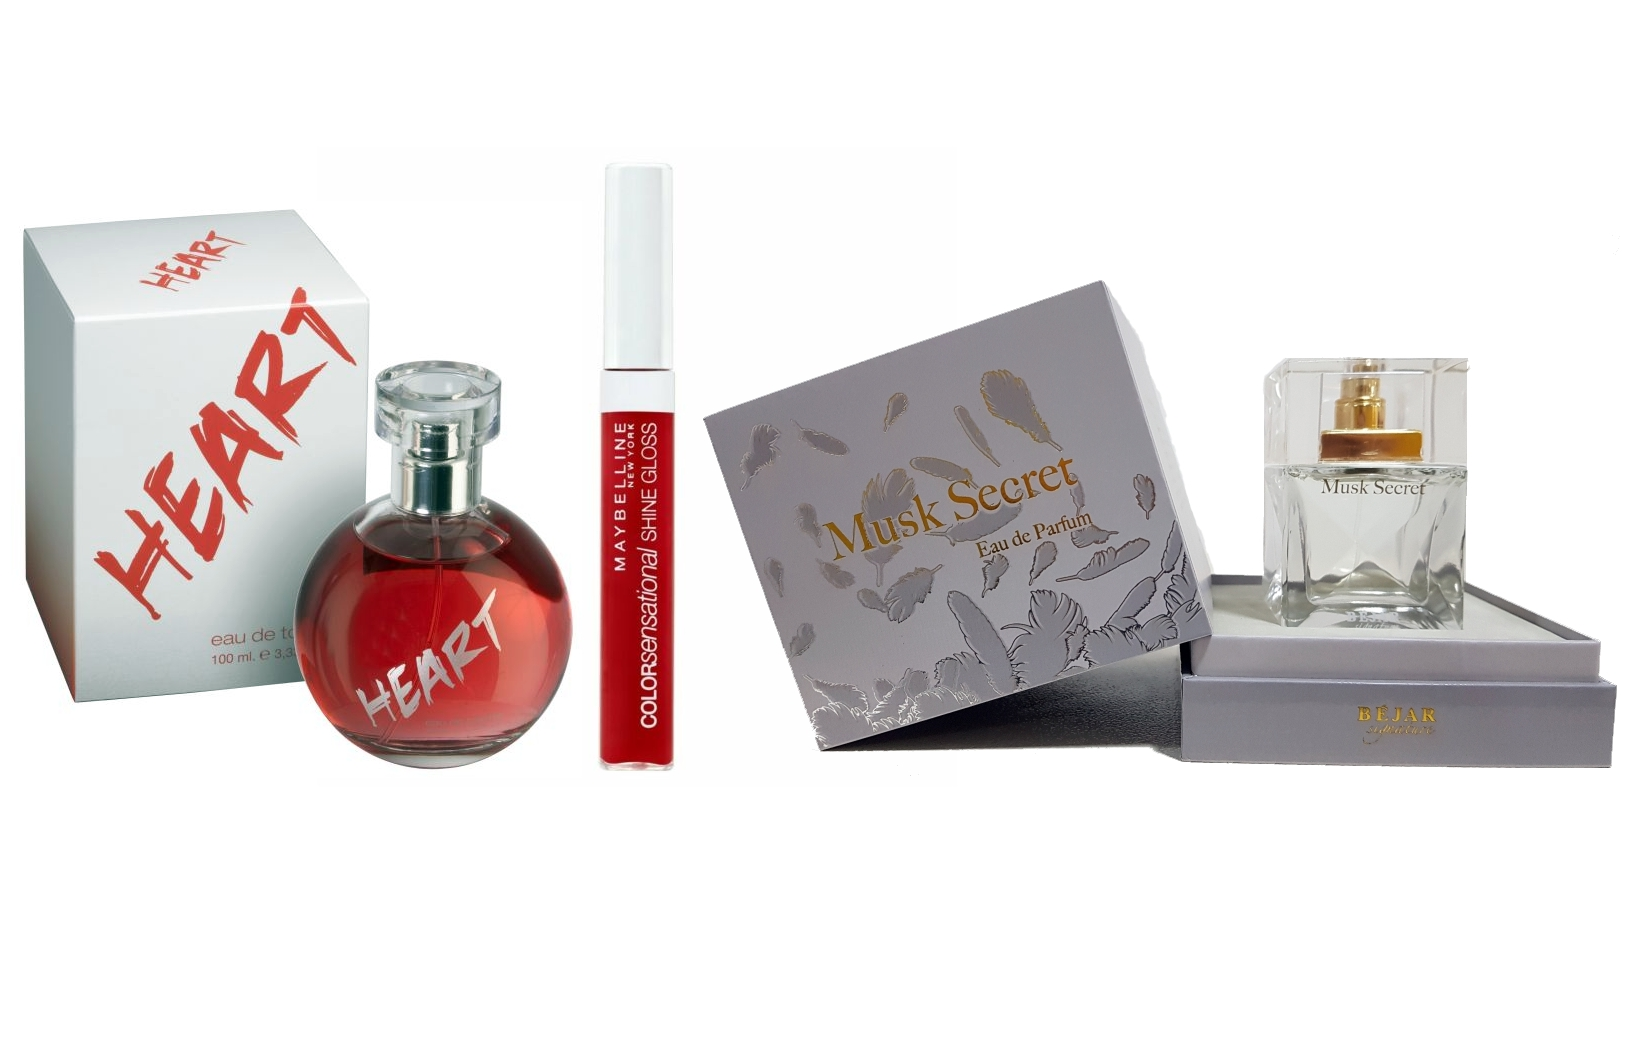 PACK ESPECIAL DIA DE LA MADRE: HEART EDT 100 ML + MAYBELLINE GLOSS 550 + BEJAR SIGNATURE MUSK SECRET EDP 75 ML REGULAR